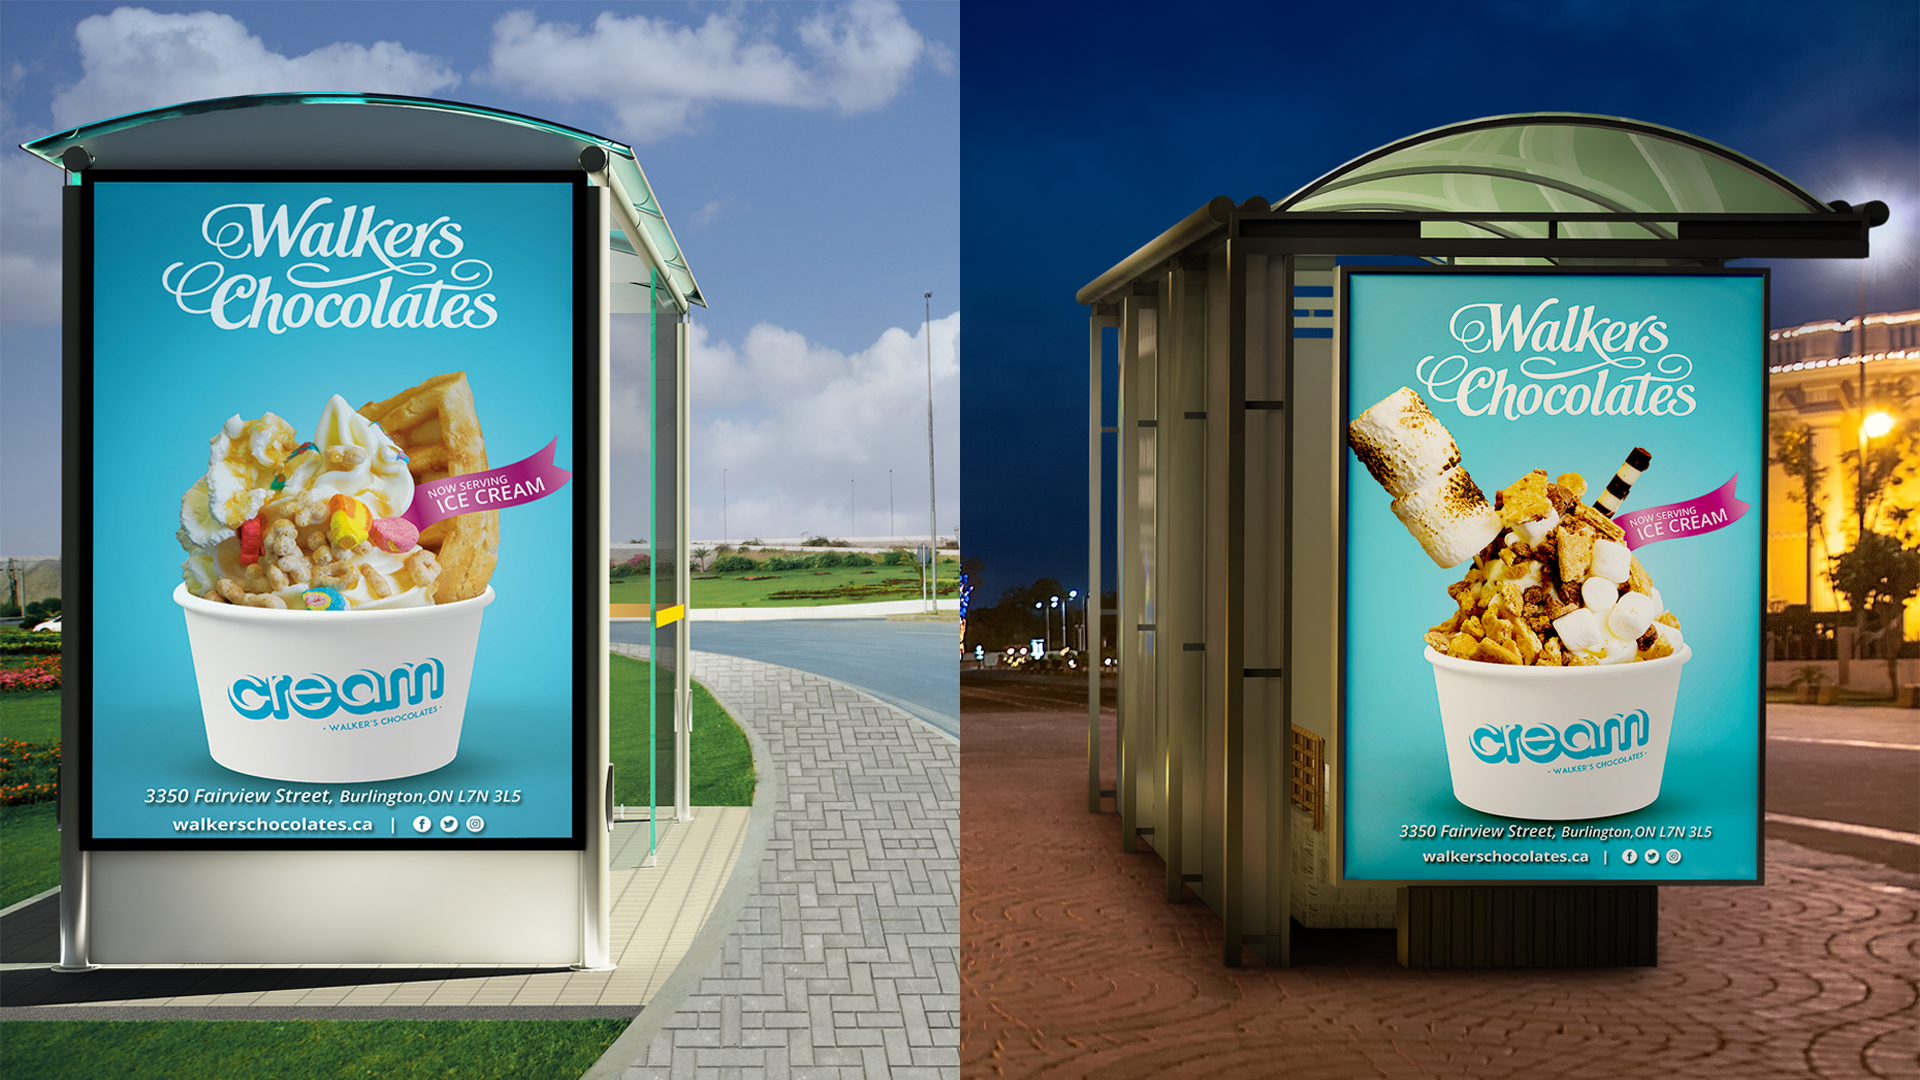 Cream by Walker's Chocolates Bus Stop advertisements